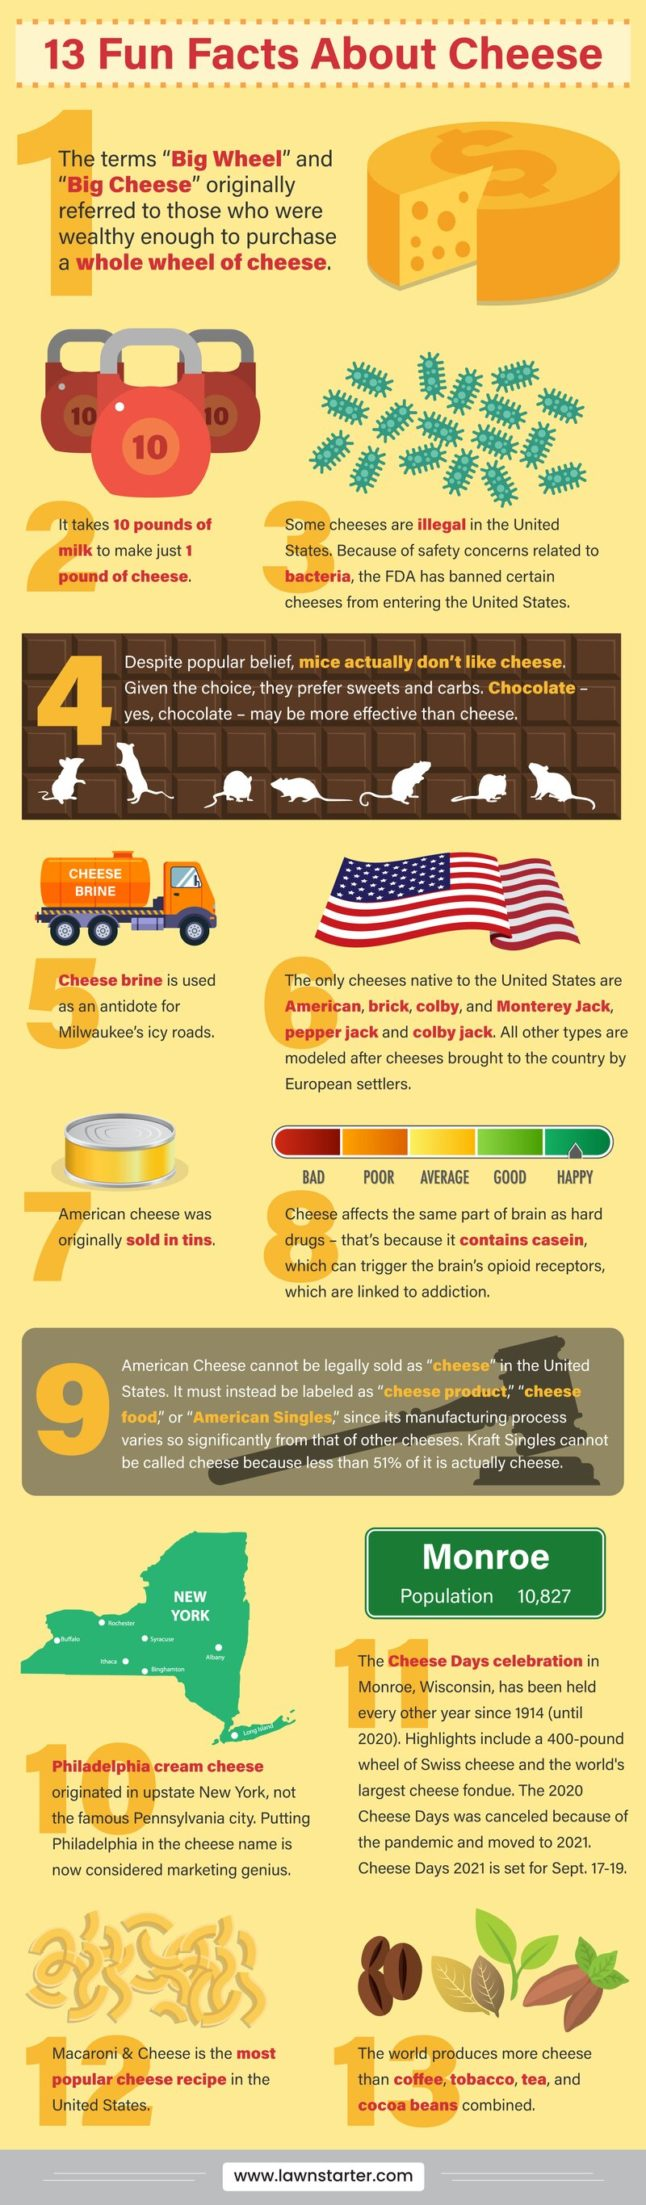 Fun facts about chess infographic highlighting the first U.S. pizzeria, the state that hosts Cheese Days, the origin of Philadelphia cream cheese, etc.